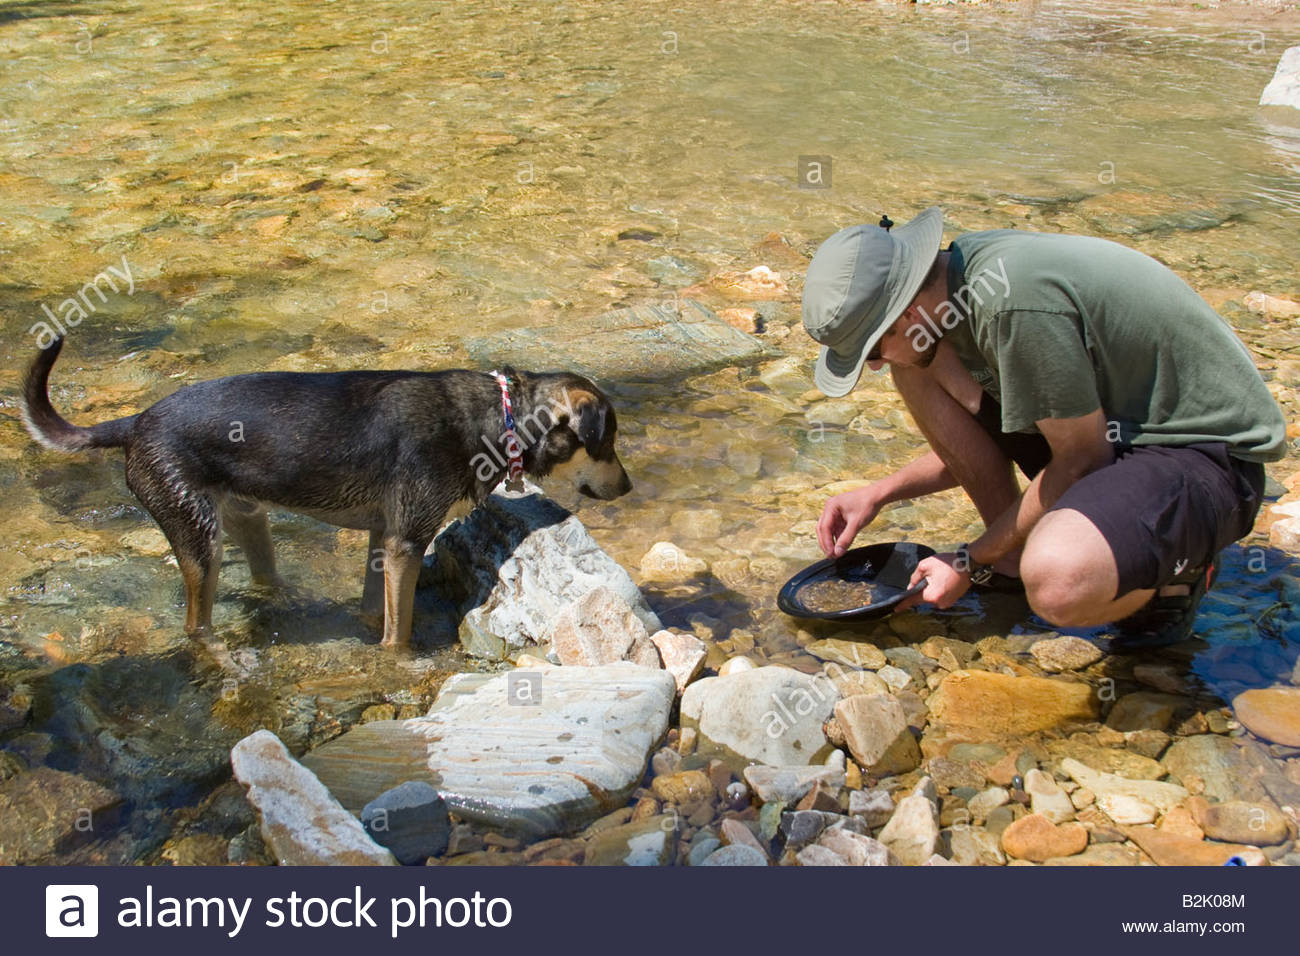 A young adult panning for gold on a mountain stream while his dog watches - Stock Image